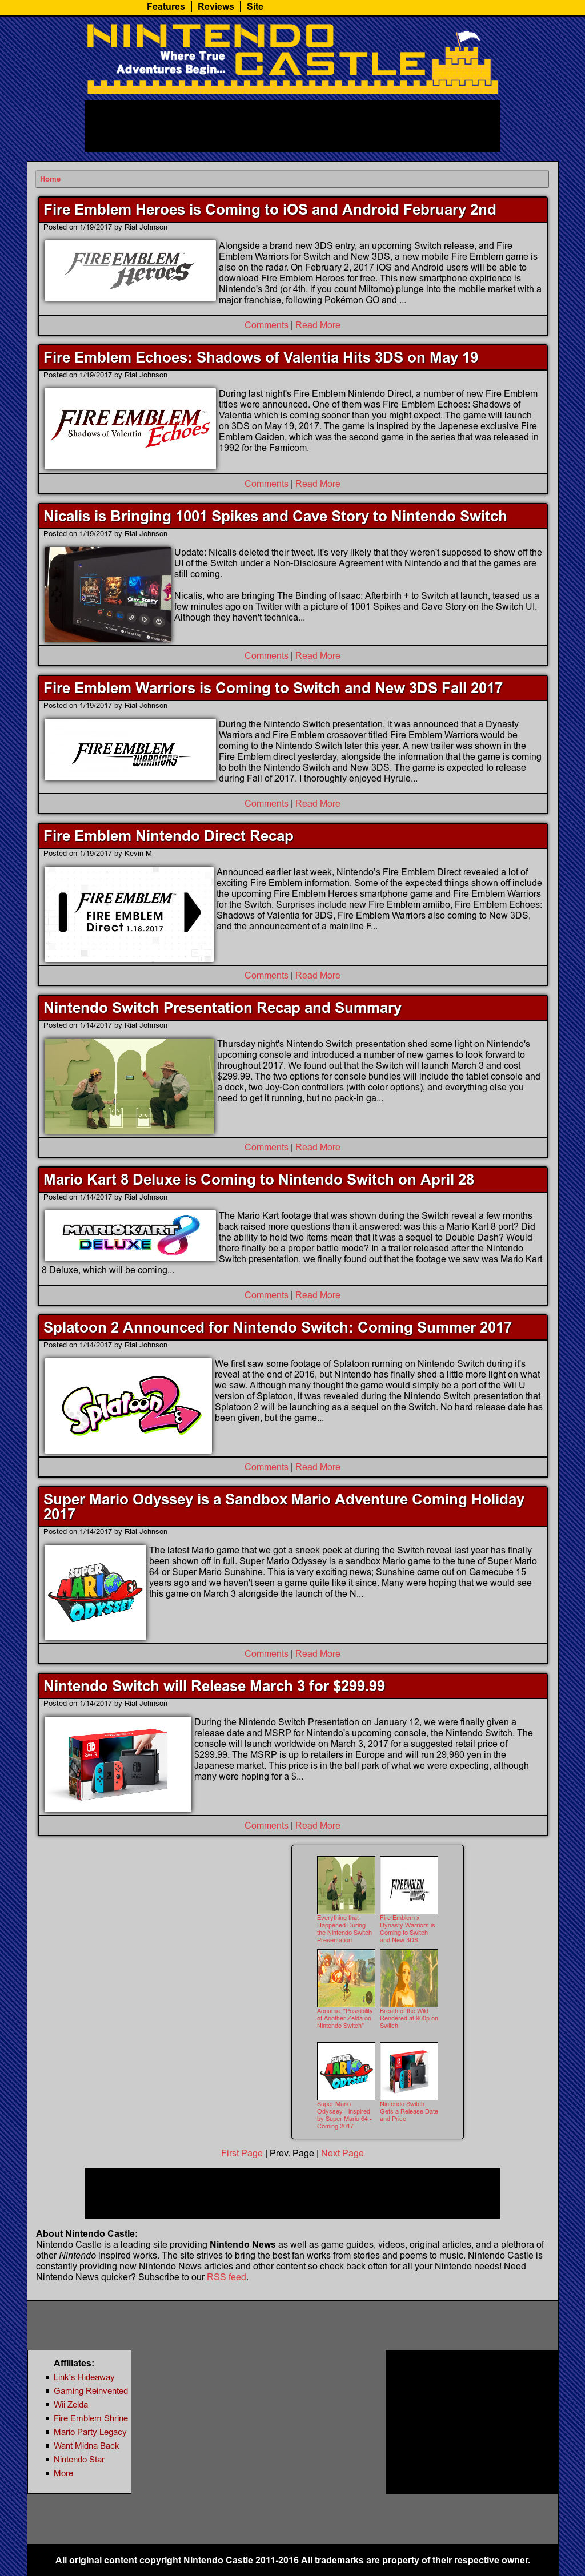 Nintendo Castle Competitors, Revenue and Employees - Owler Company